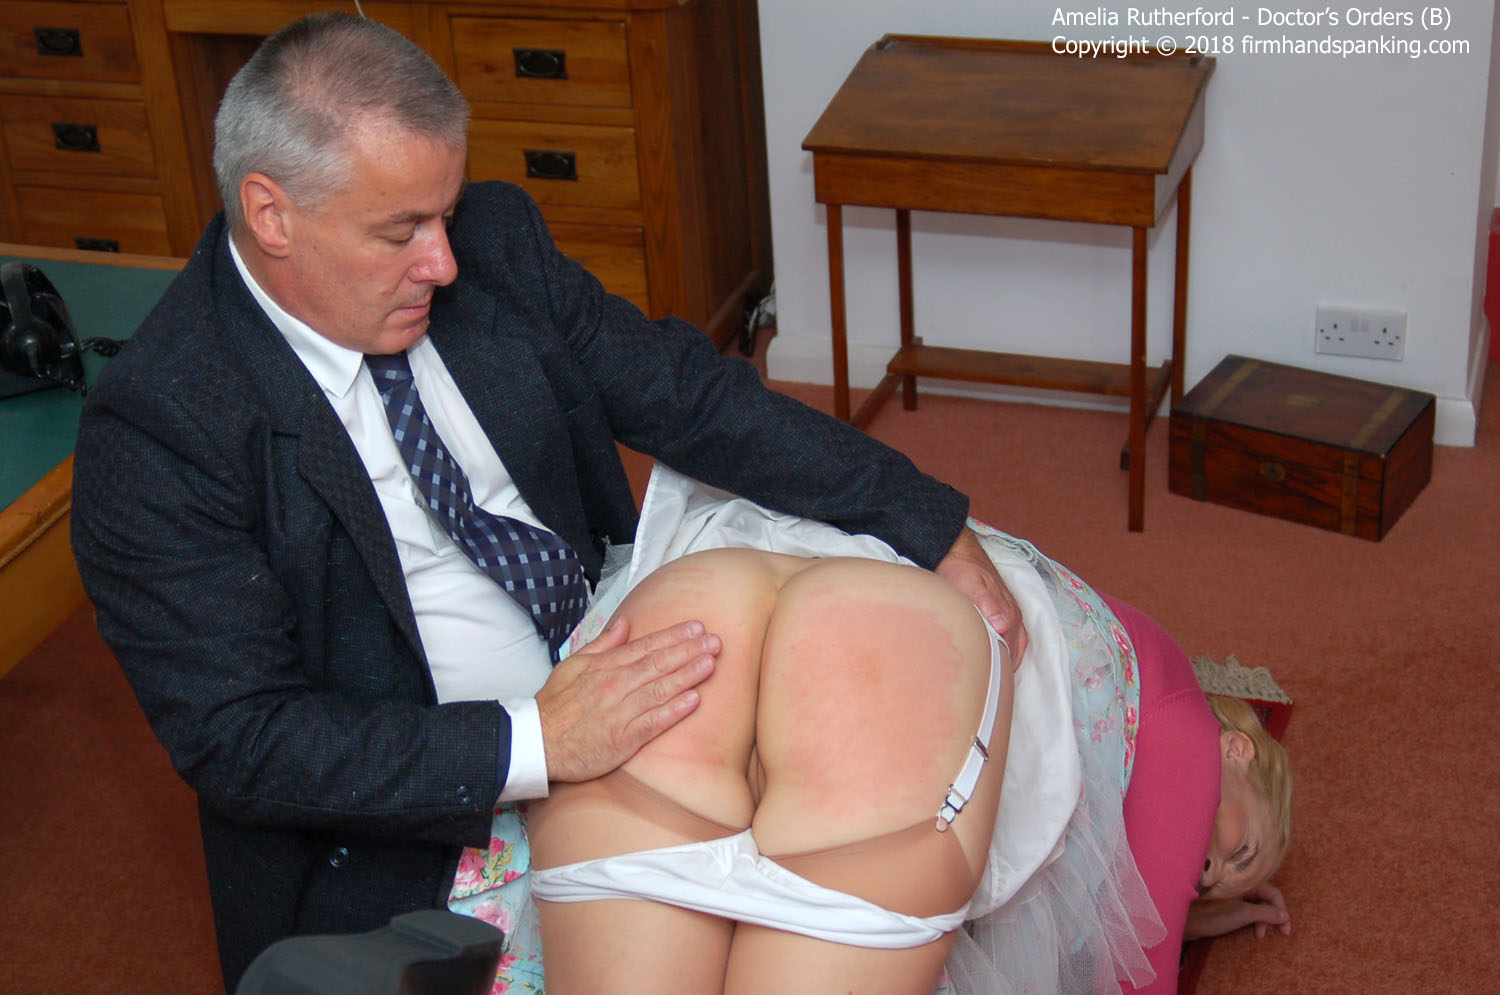 Firm Hand Spanking – MP4/HD – Amelia Rutherford – Doctor's Orders – B/Panties down, nurse Amelia Rutherford is soundly spanked for disrespect